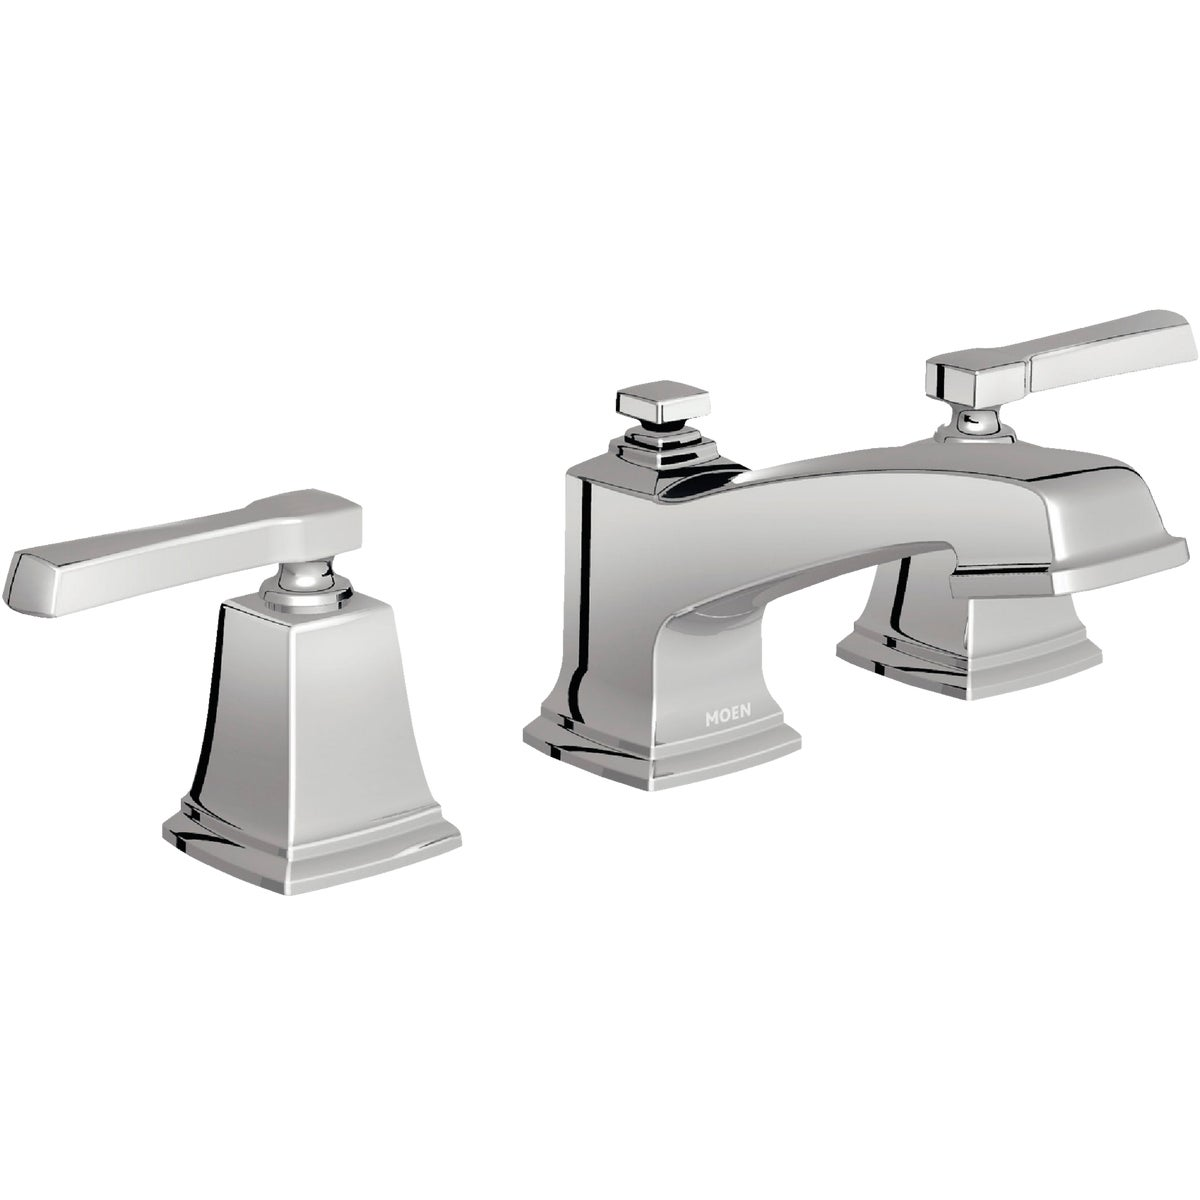 2H WS CHROME LAV FAUCET - 84820 by Moen Inc